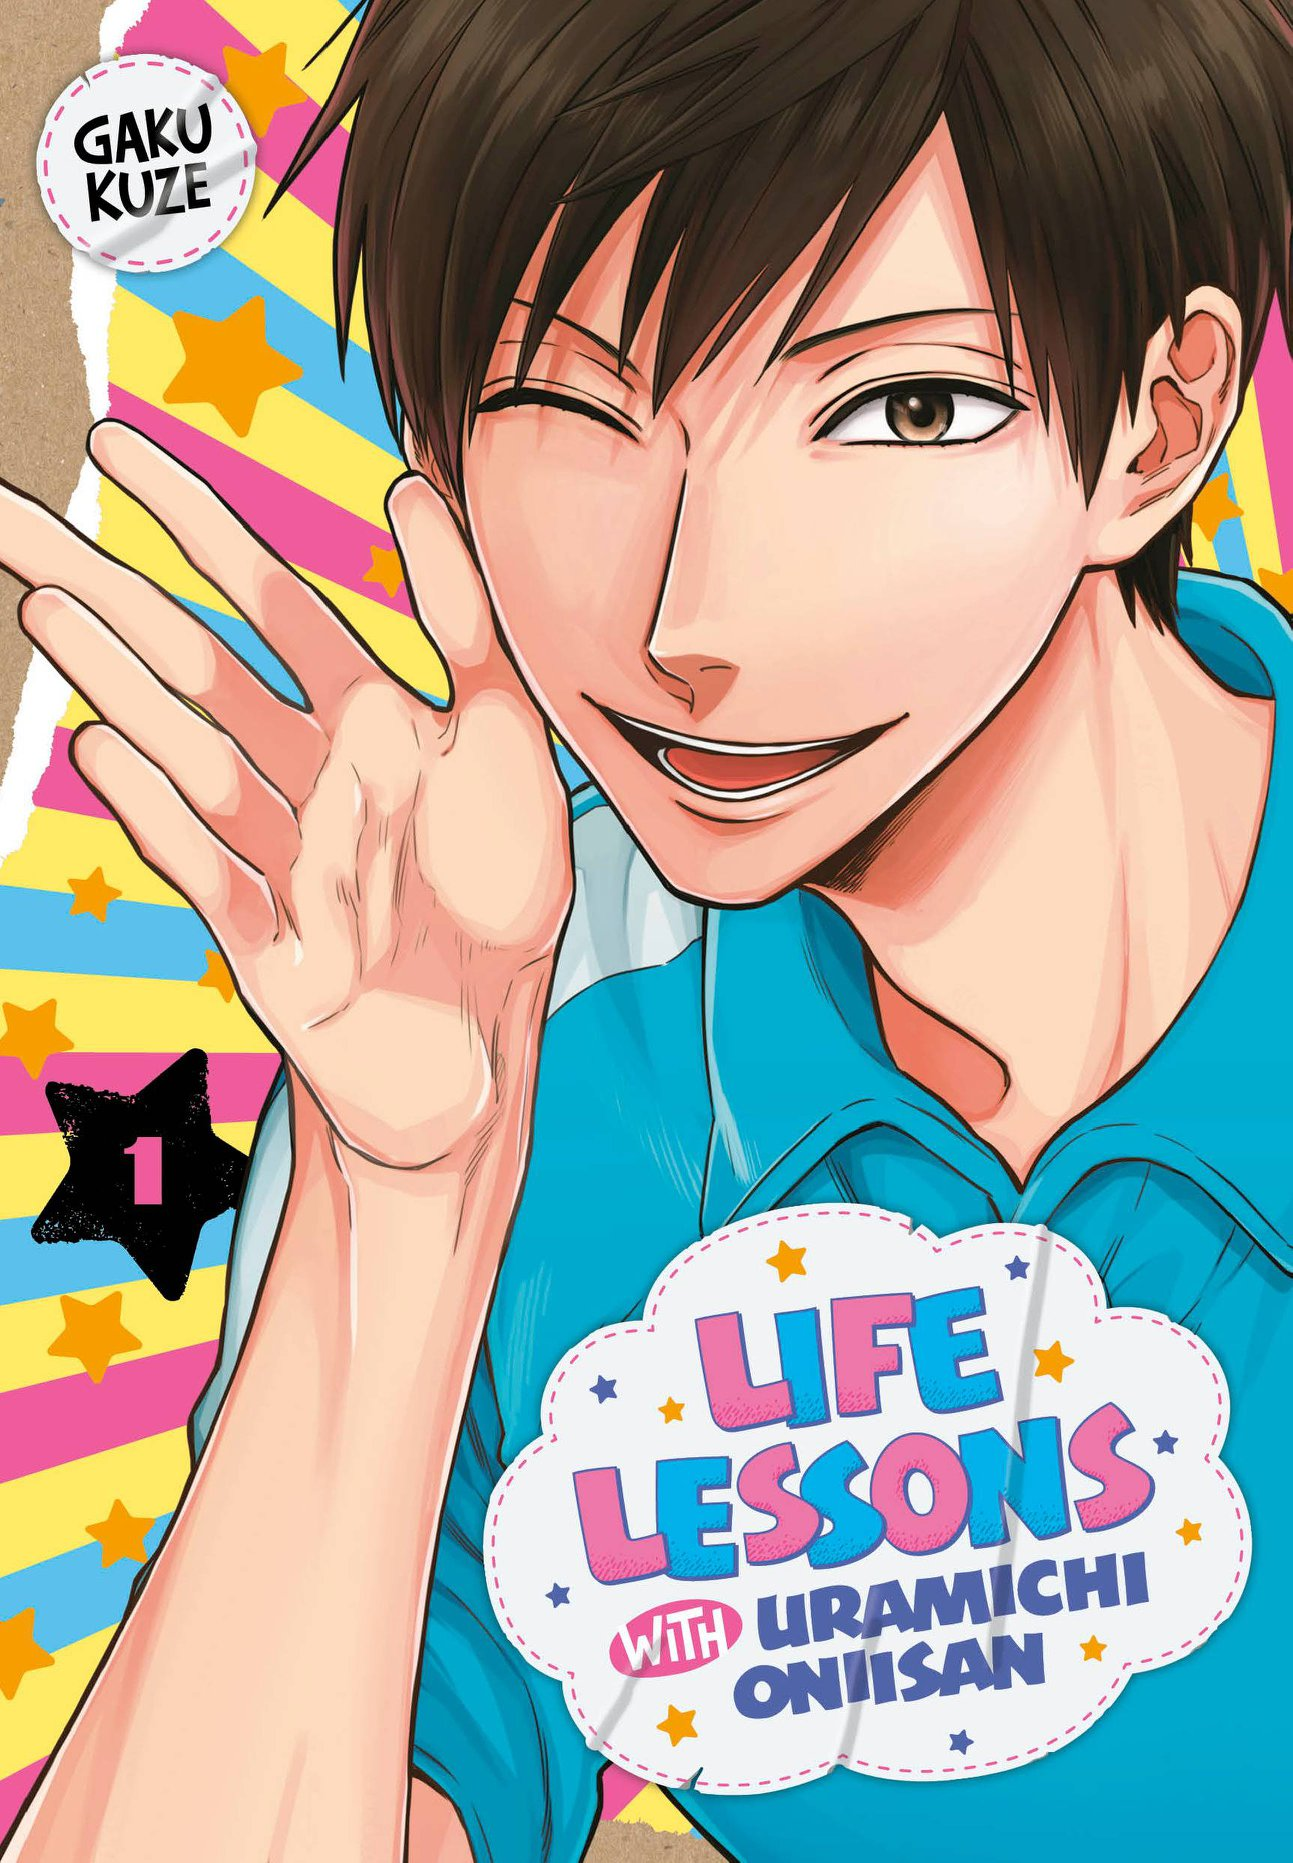 LIFE LESSONS WITH URAMICHI ONIISAN GN VOL 01